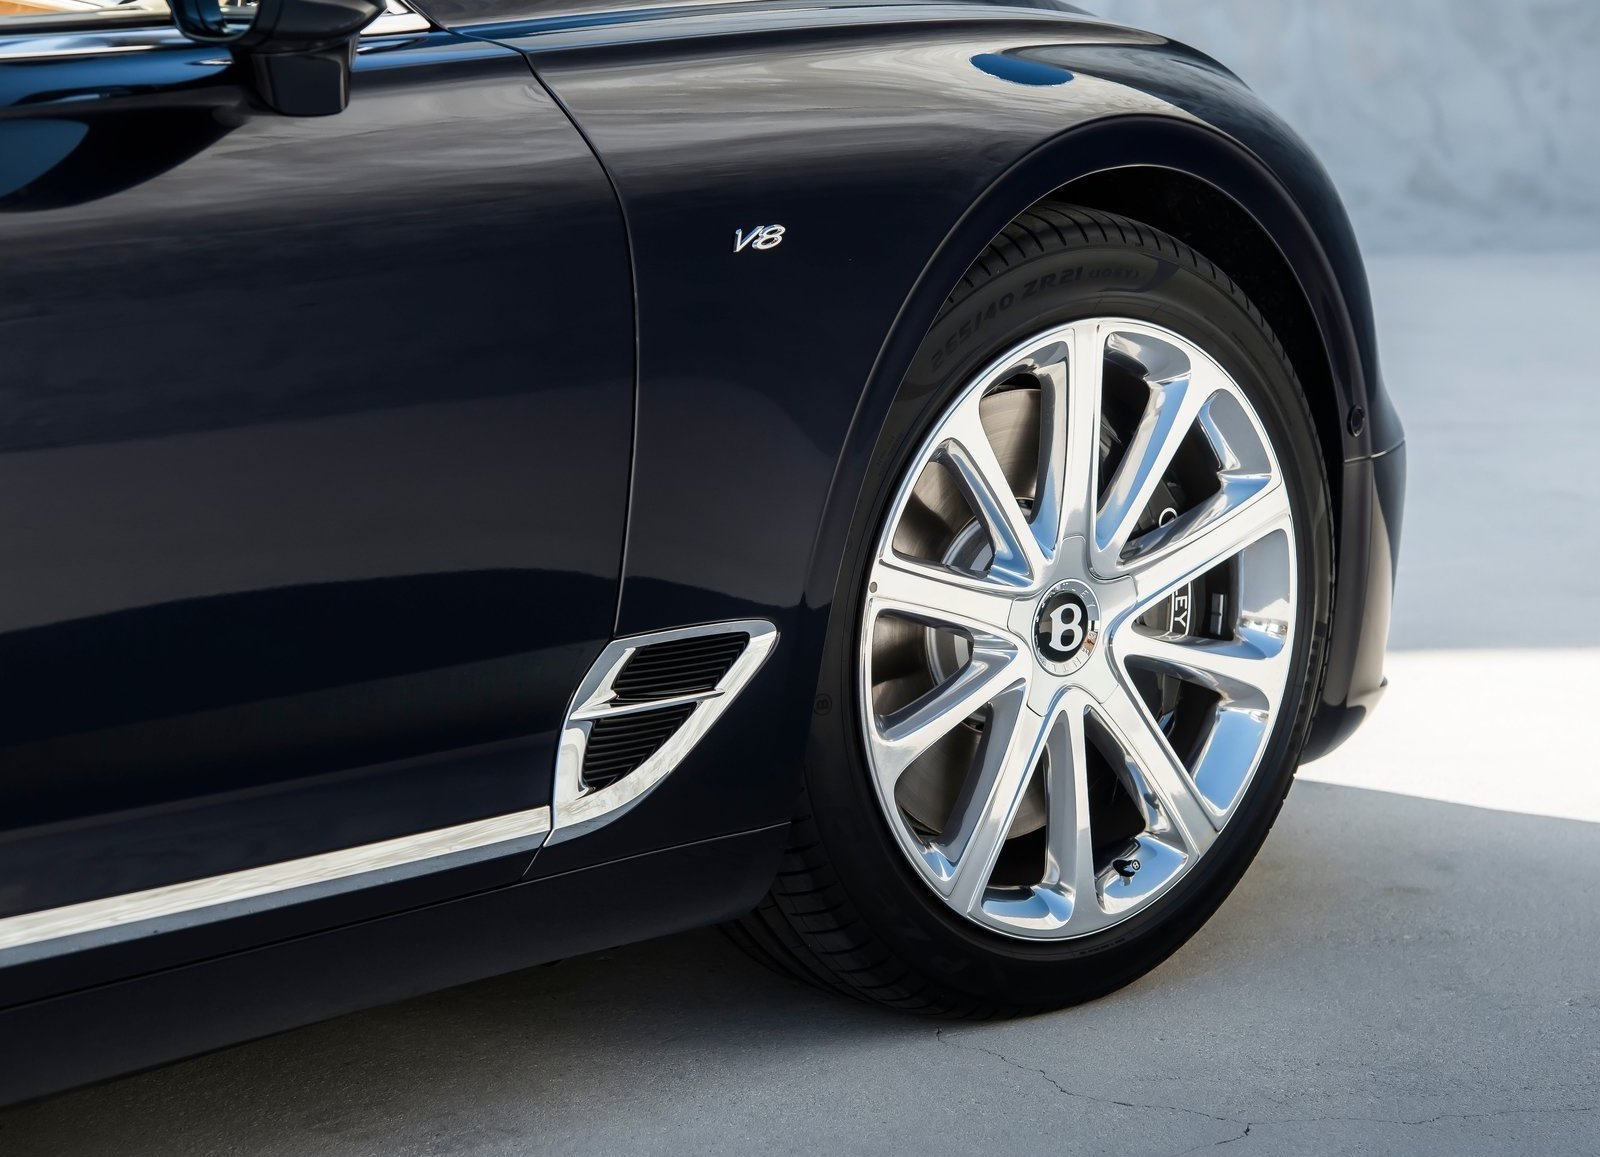 2020 Bentley Continental GT V8 wheel detail